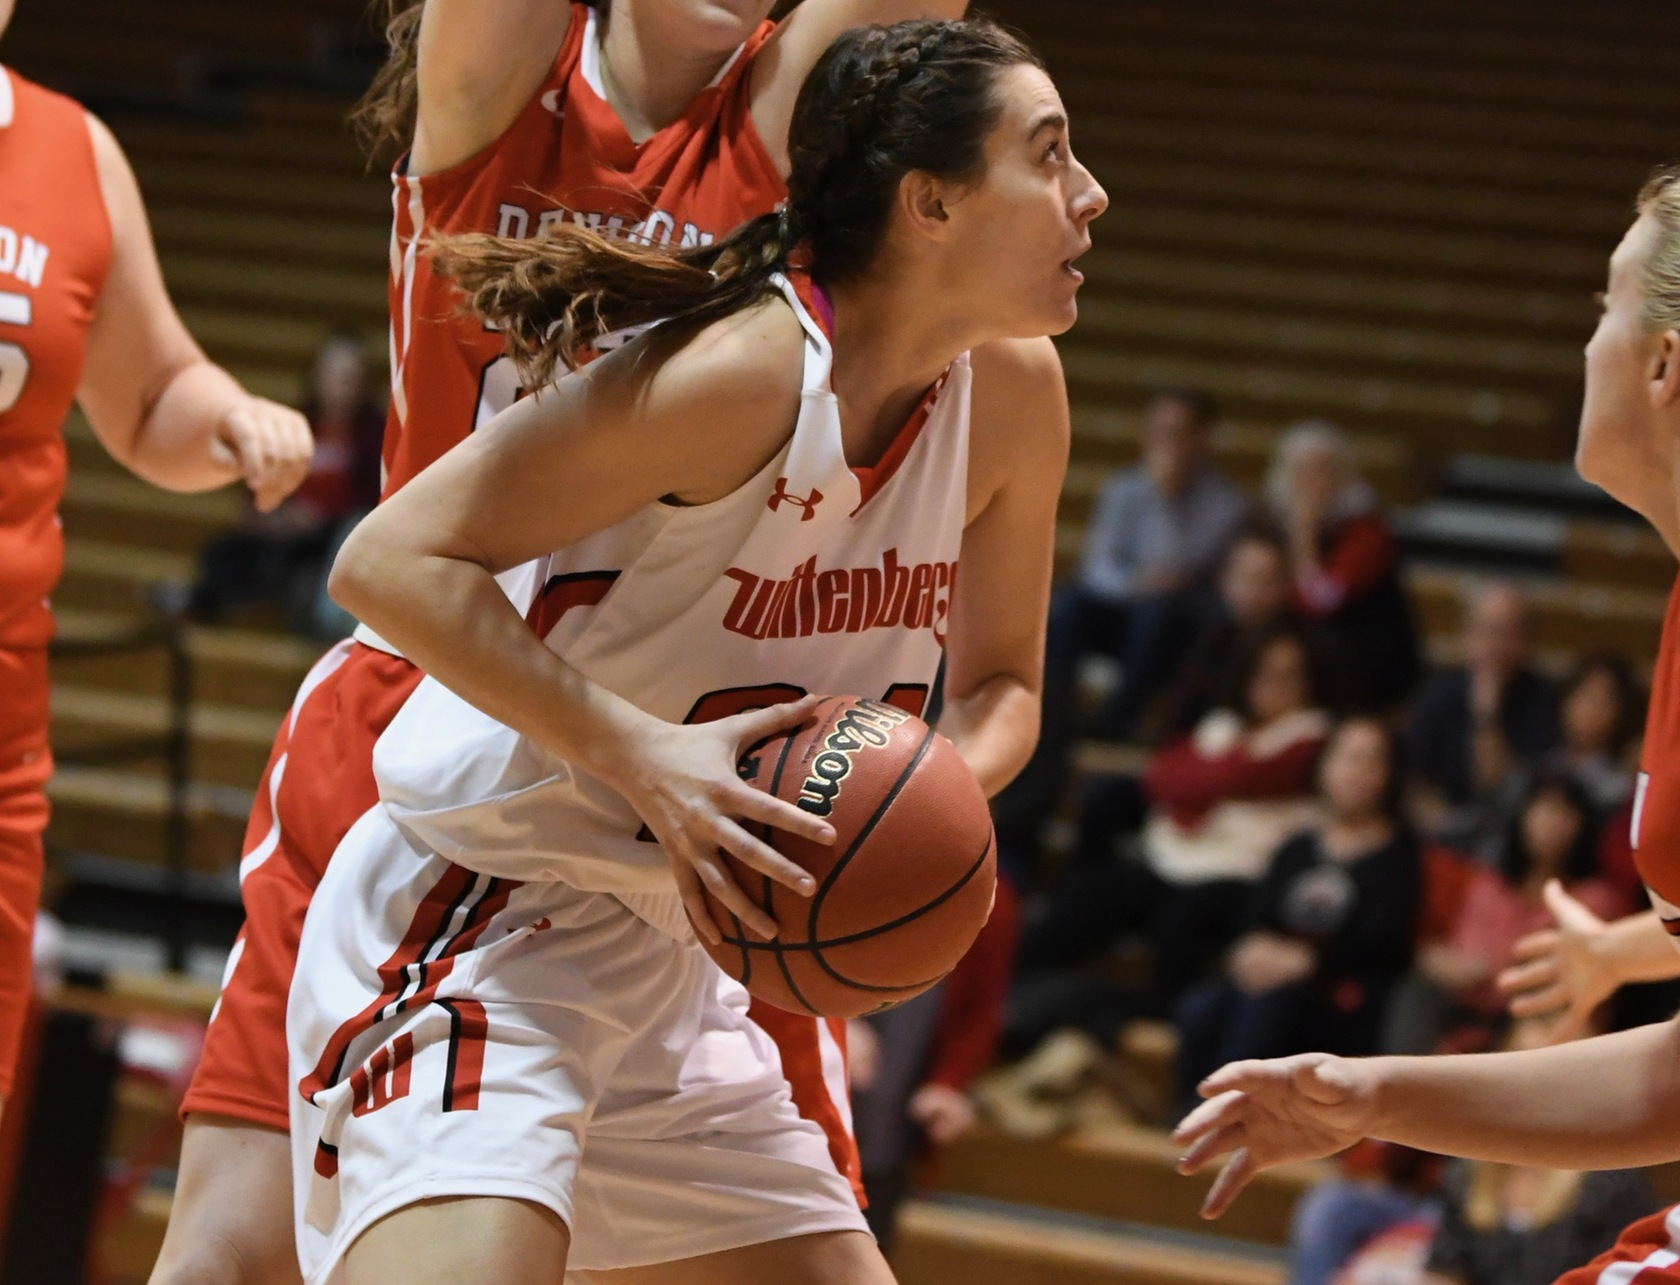 Junior Korynne Berner posted her 1st-career double-double with 14 points and 11 rebounds in Wittenberg's 56-45 home win over Ohio Wesleyan